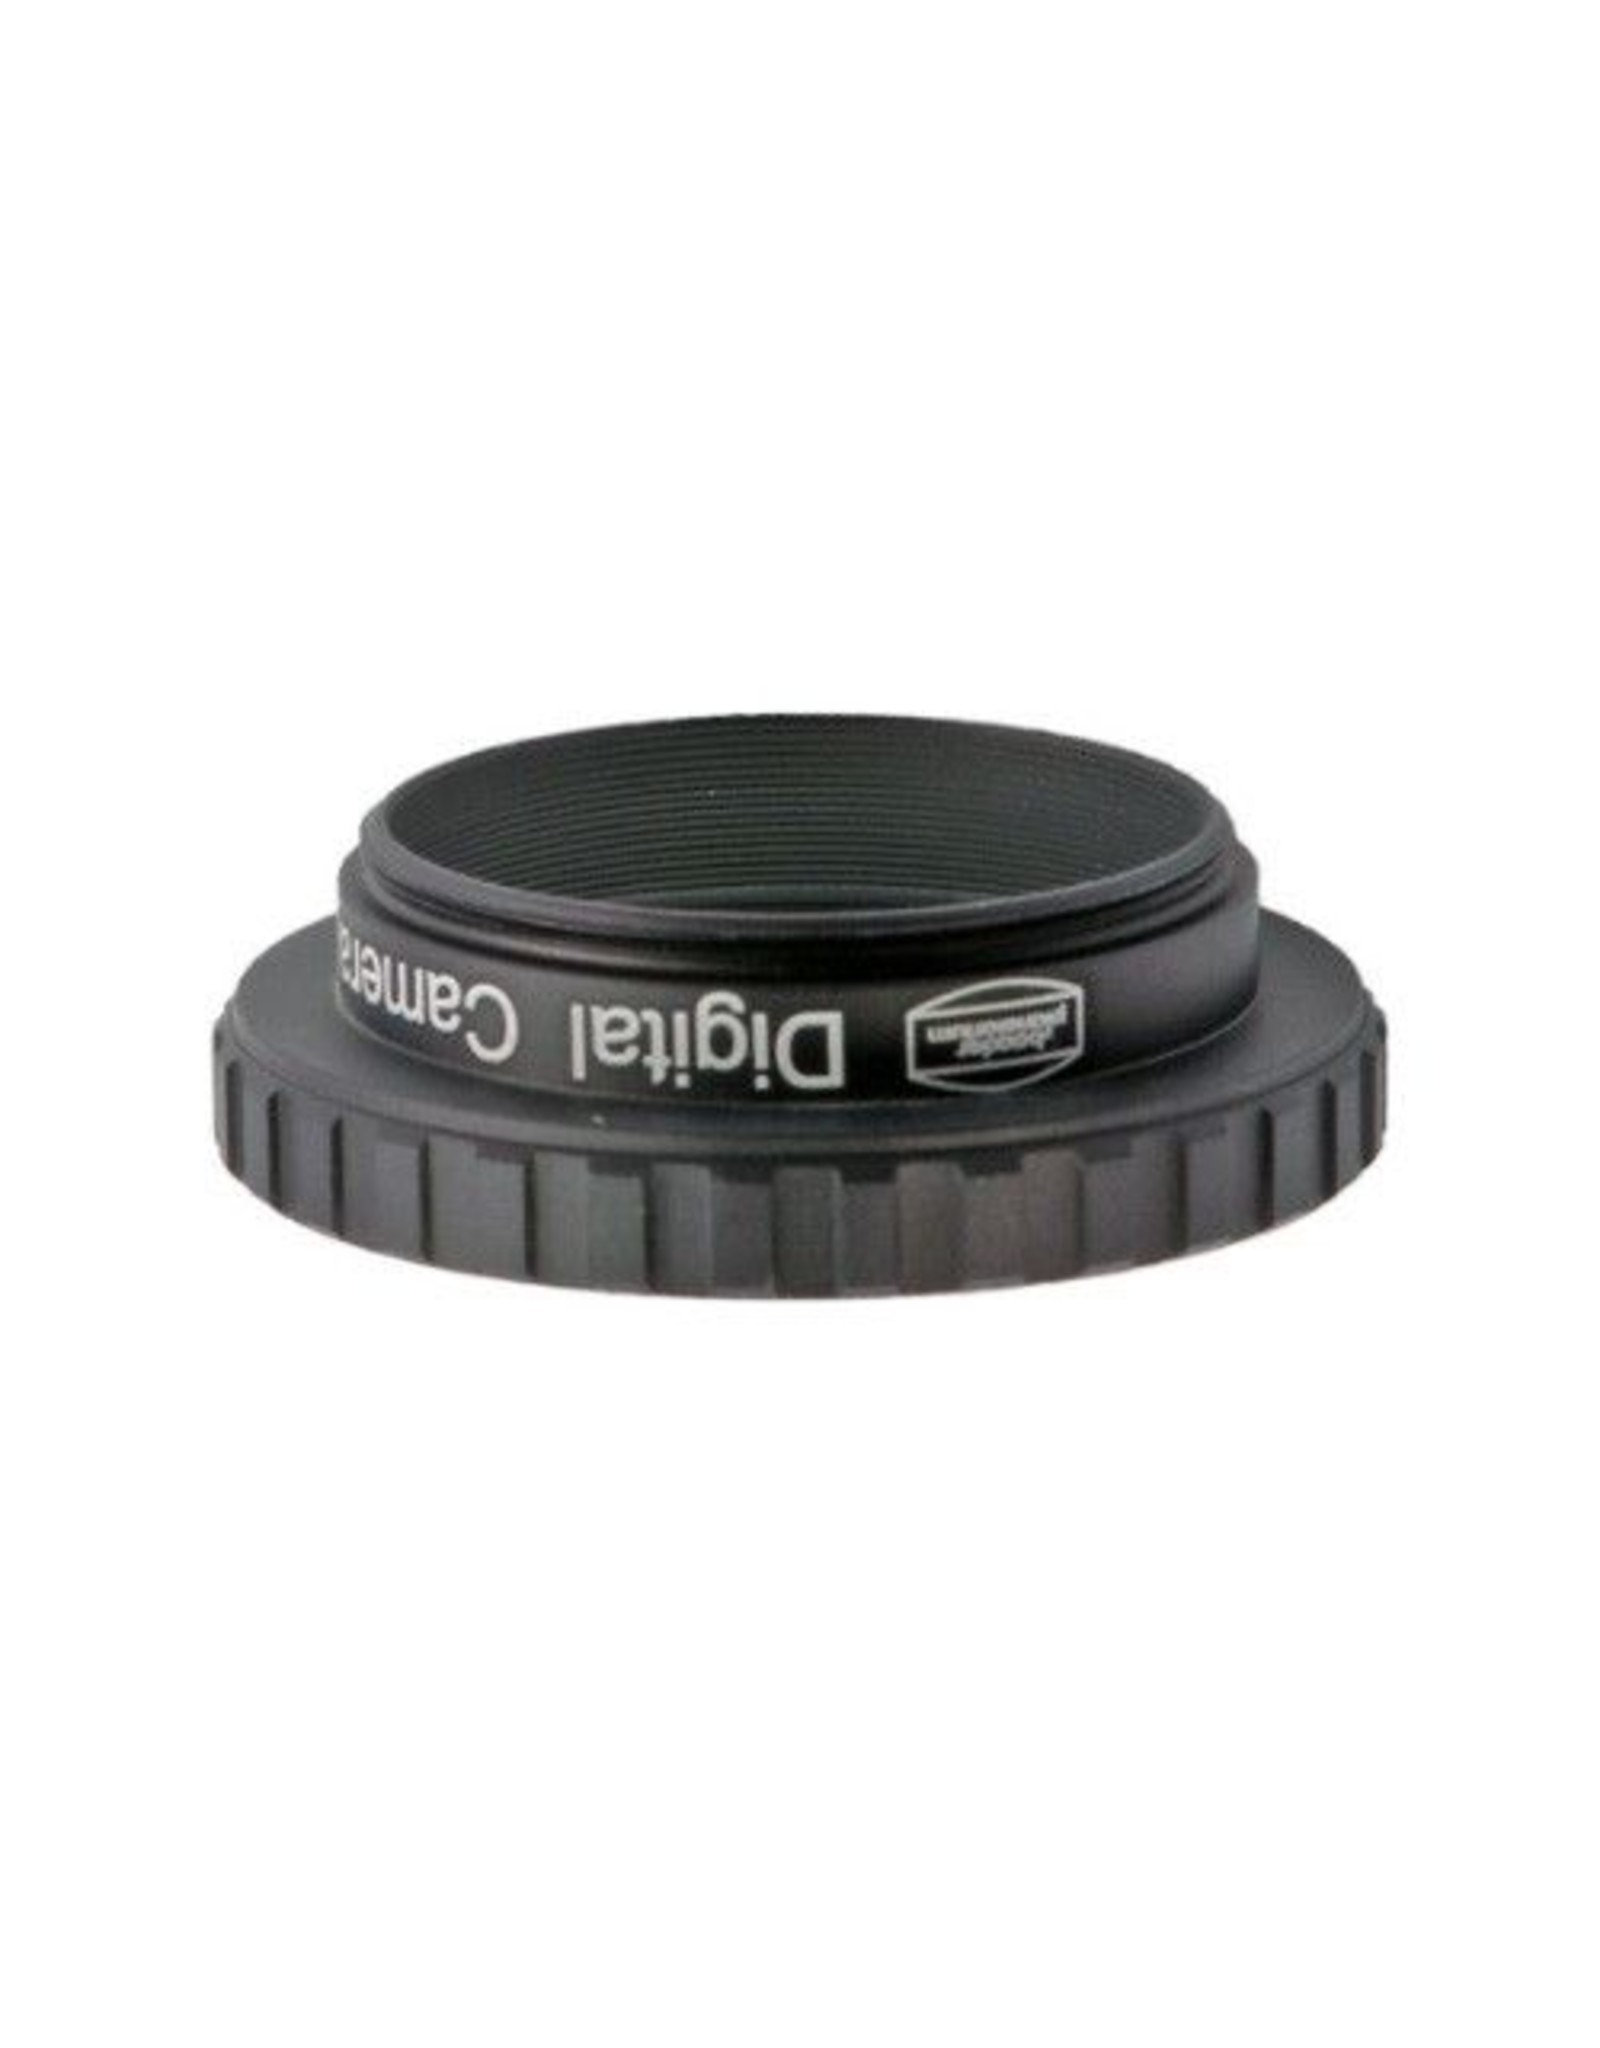 Baader T-2/M37 DT Adapter for ADPS System - DTA37